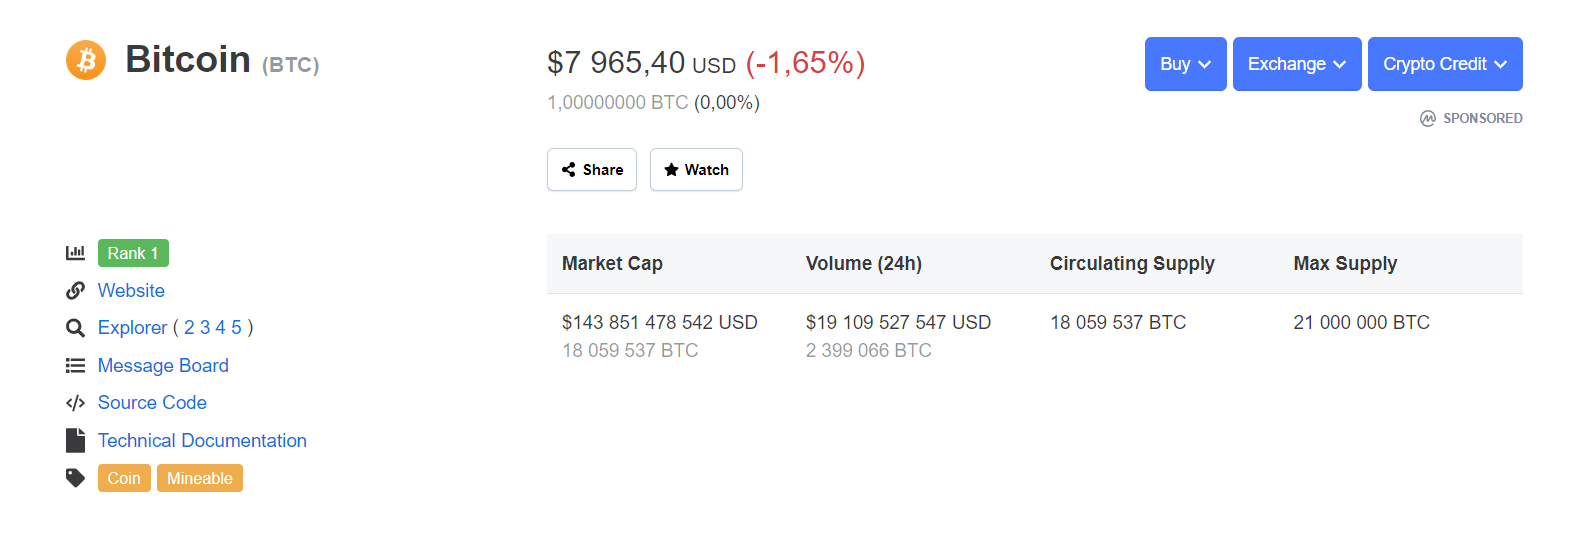 BTC price on CMC